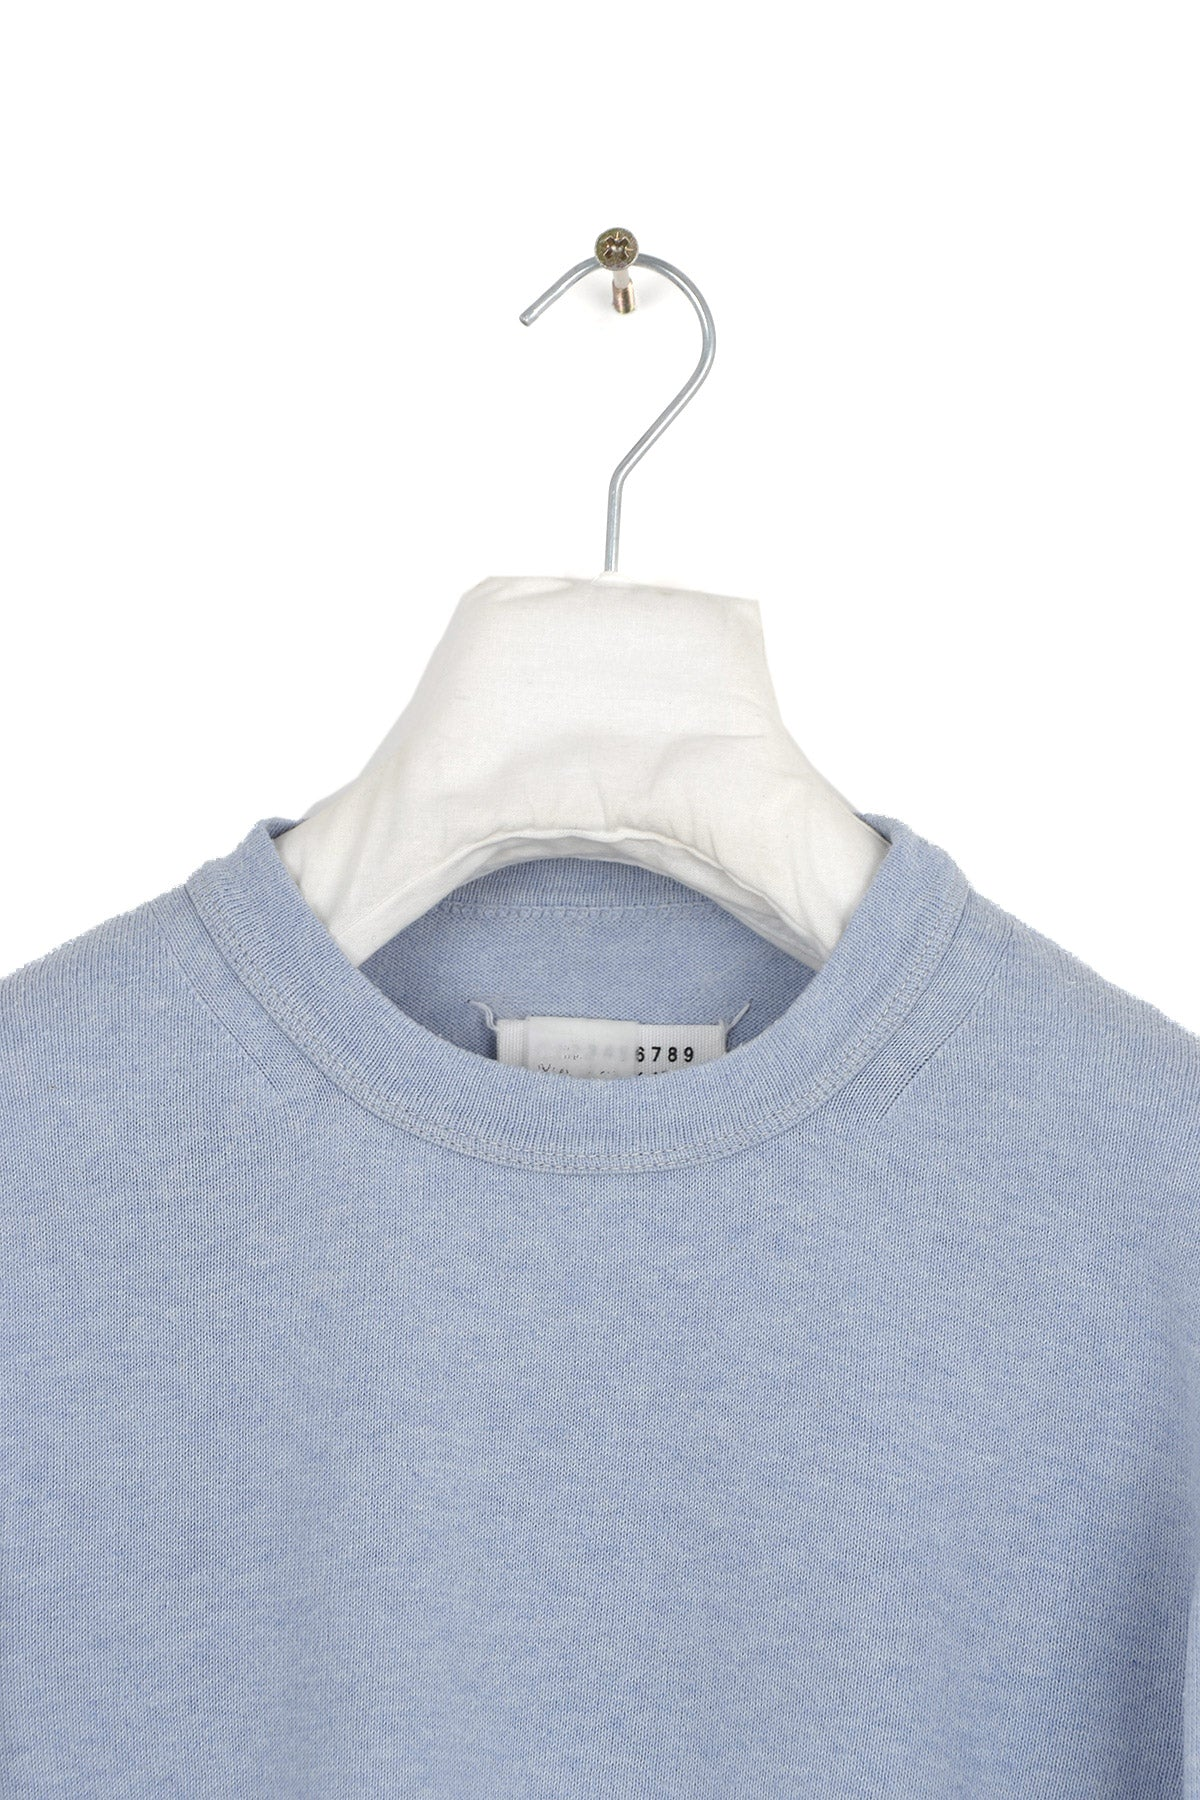 2003 S/S LIGHT MELANGE COTTON CREWNECK BY MISS DEANNA